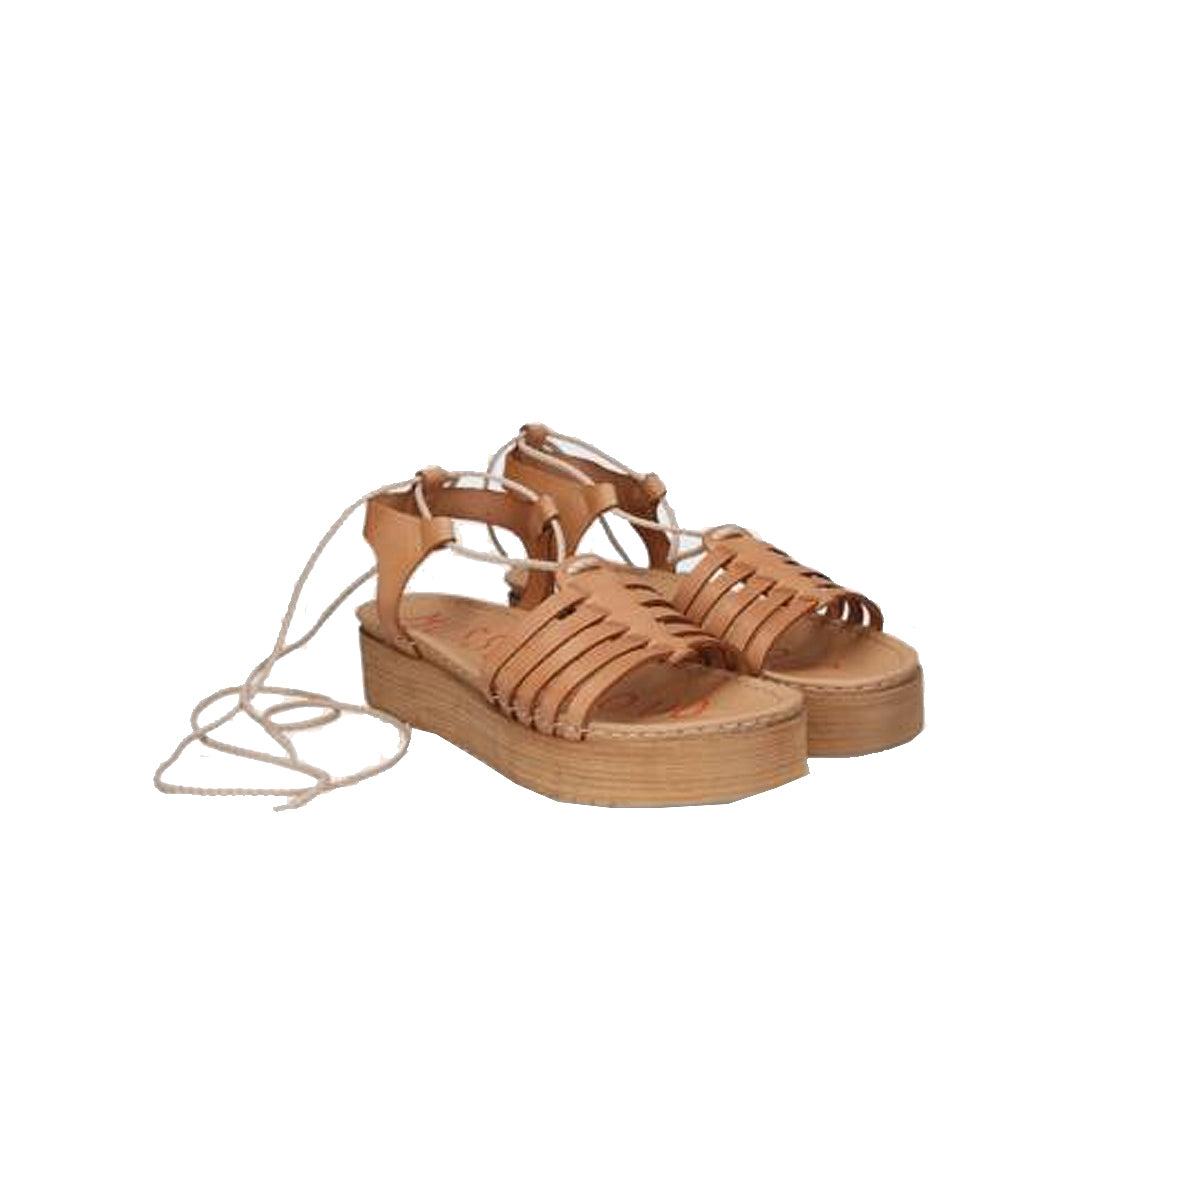 Musse & Cloud Women's Bily Sandals - Nude